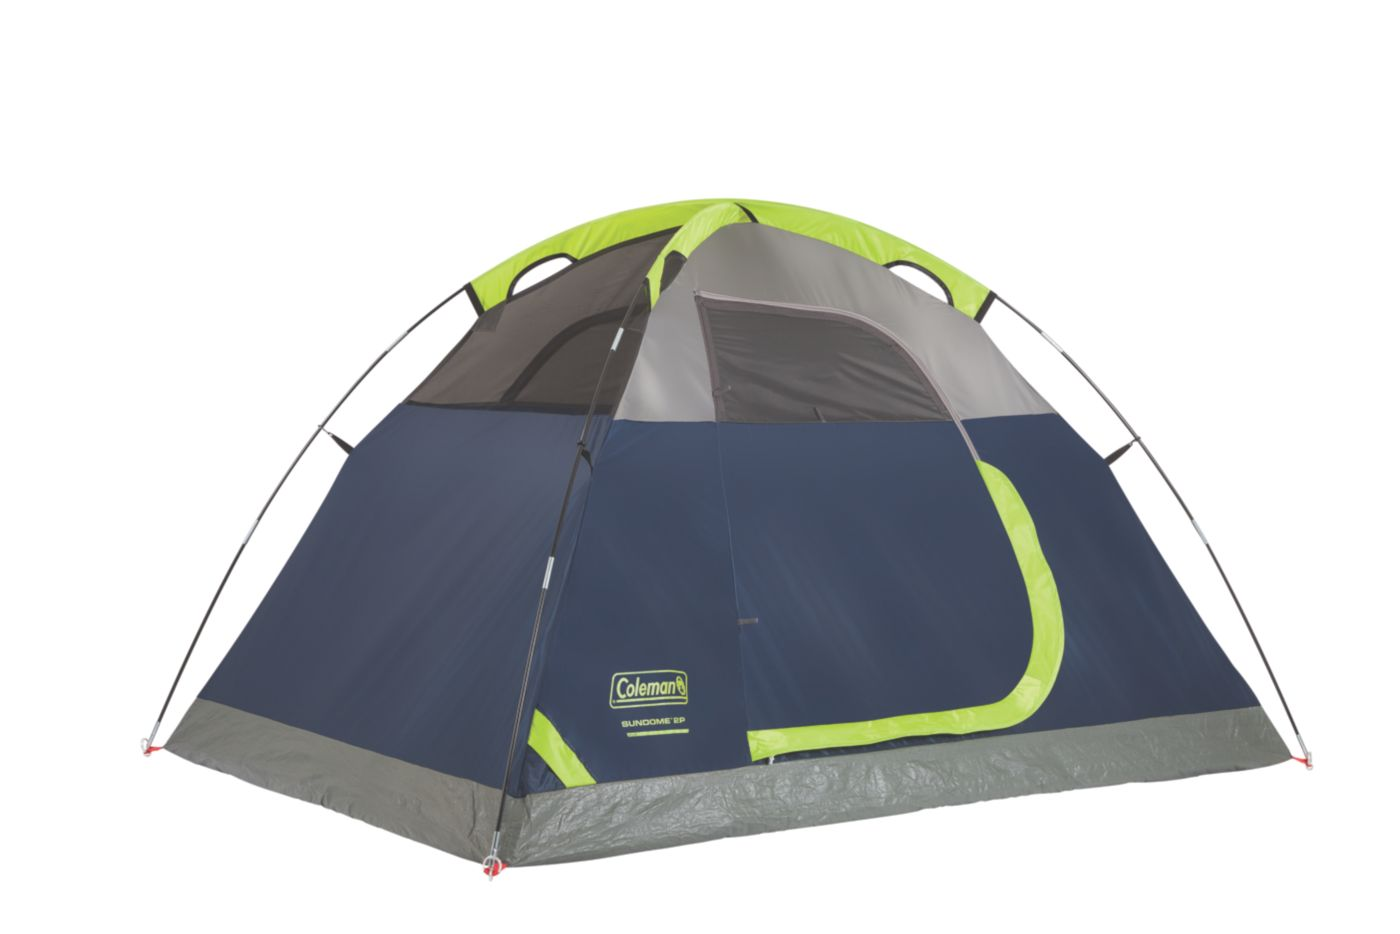 ... Sundome® 2-Person Dome Tent ...  sc 1 st  Coleman & 2 Person Dome Tent | Dome Tent | Coleman